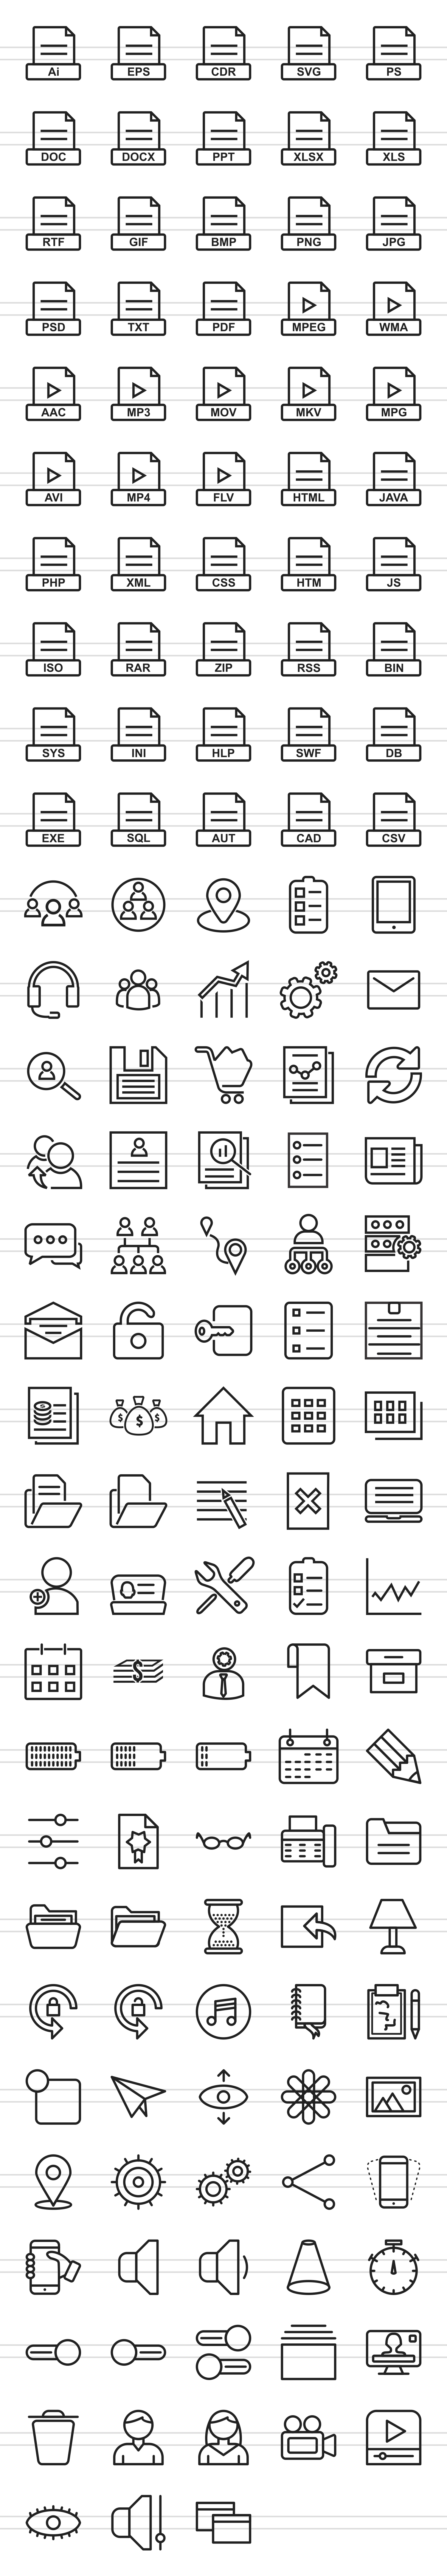 148 Files & Folders Line Icons example image 2